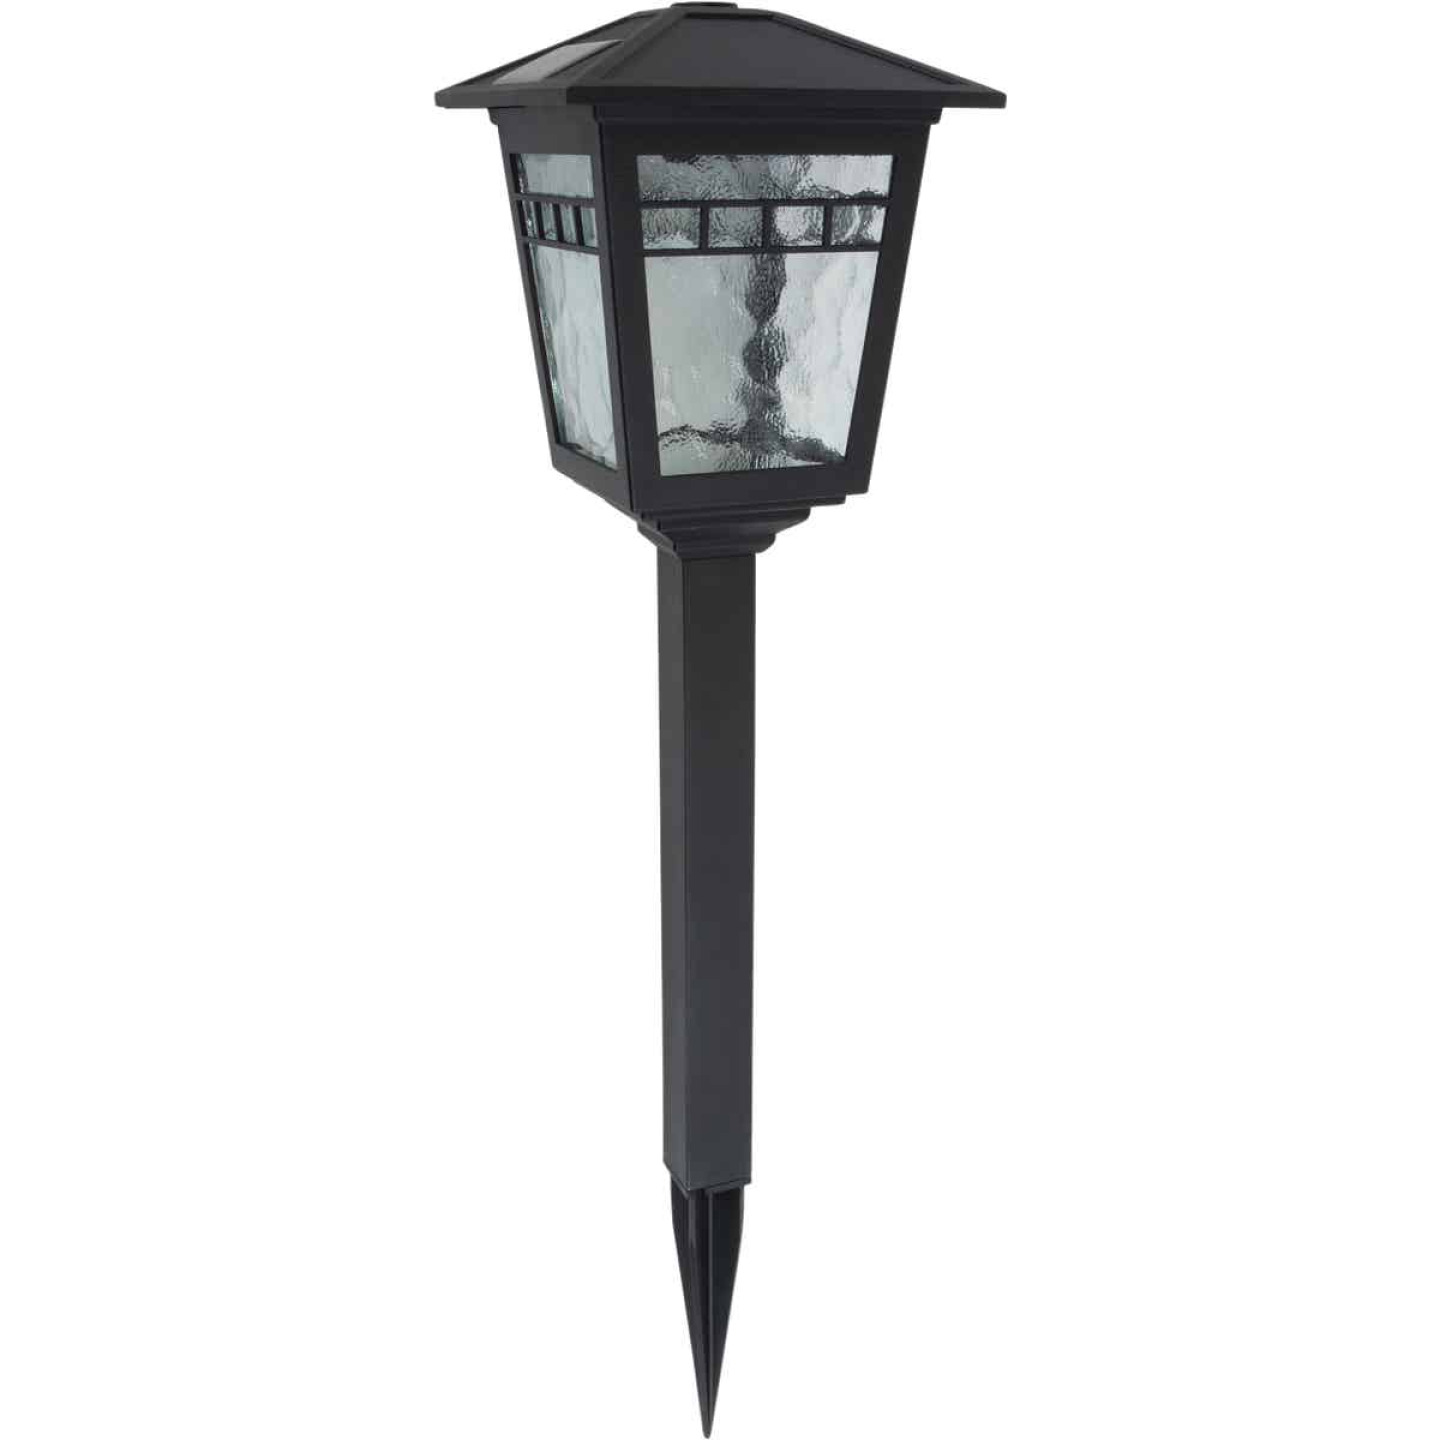 Fusion Black 10 Lumens Plastic Coach Solar Path Light Image 1